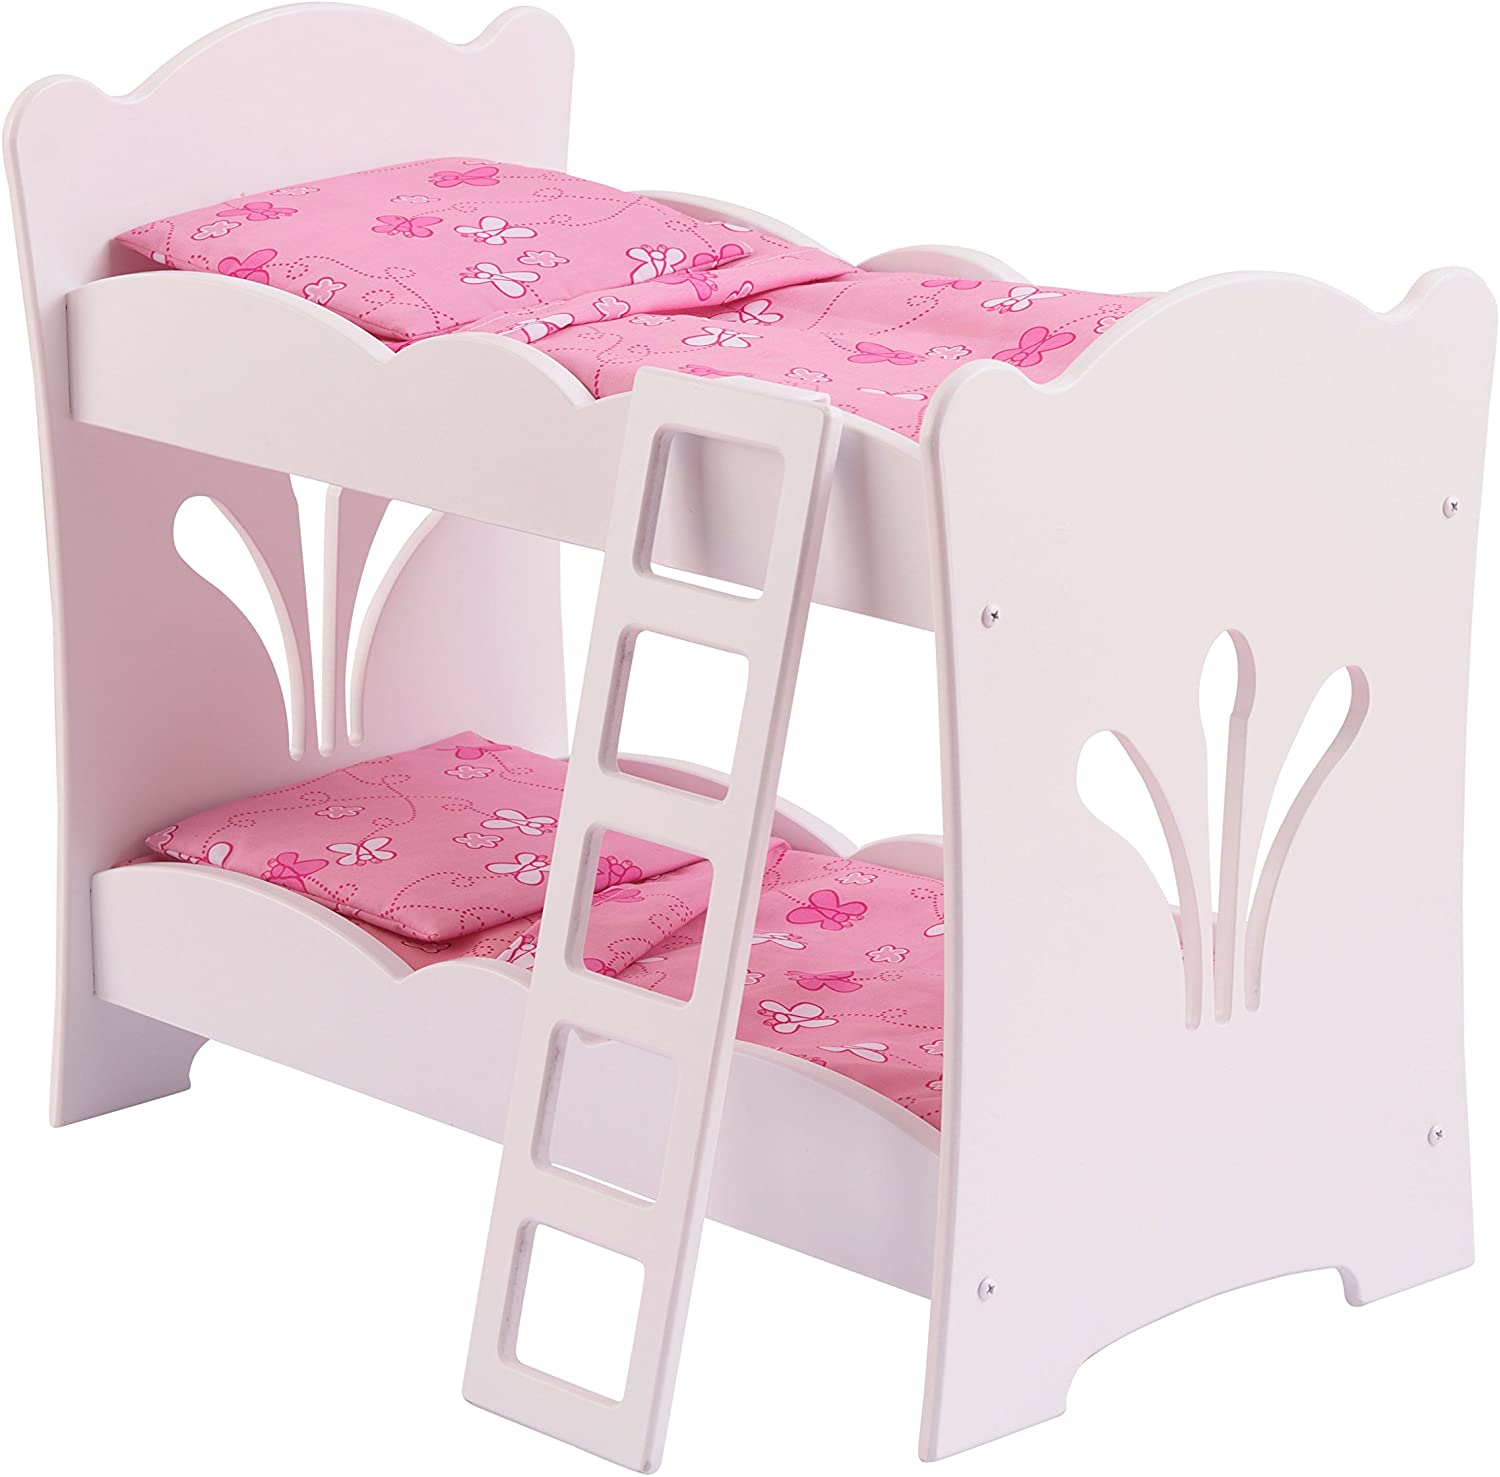 Amazon Com Kidkraft Wooden Lil Doll Bunk Bed With Bedding Set Furniture For 18 Dolls White 20 75 L X 11 57 W X 17 52 H Toys Games